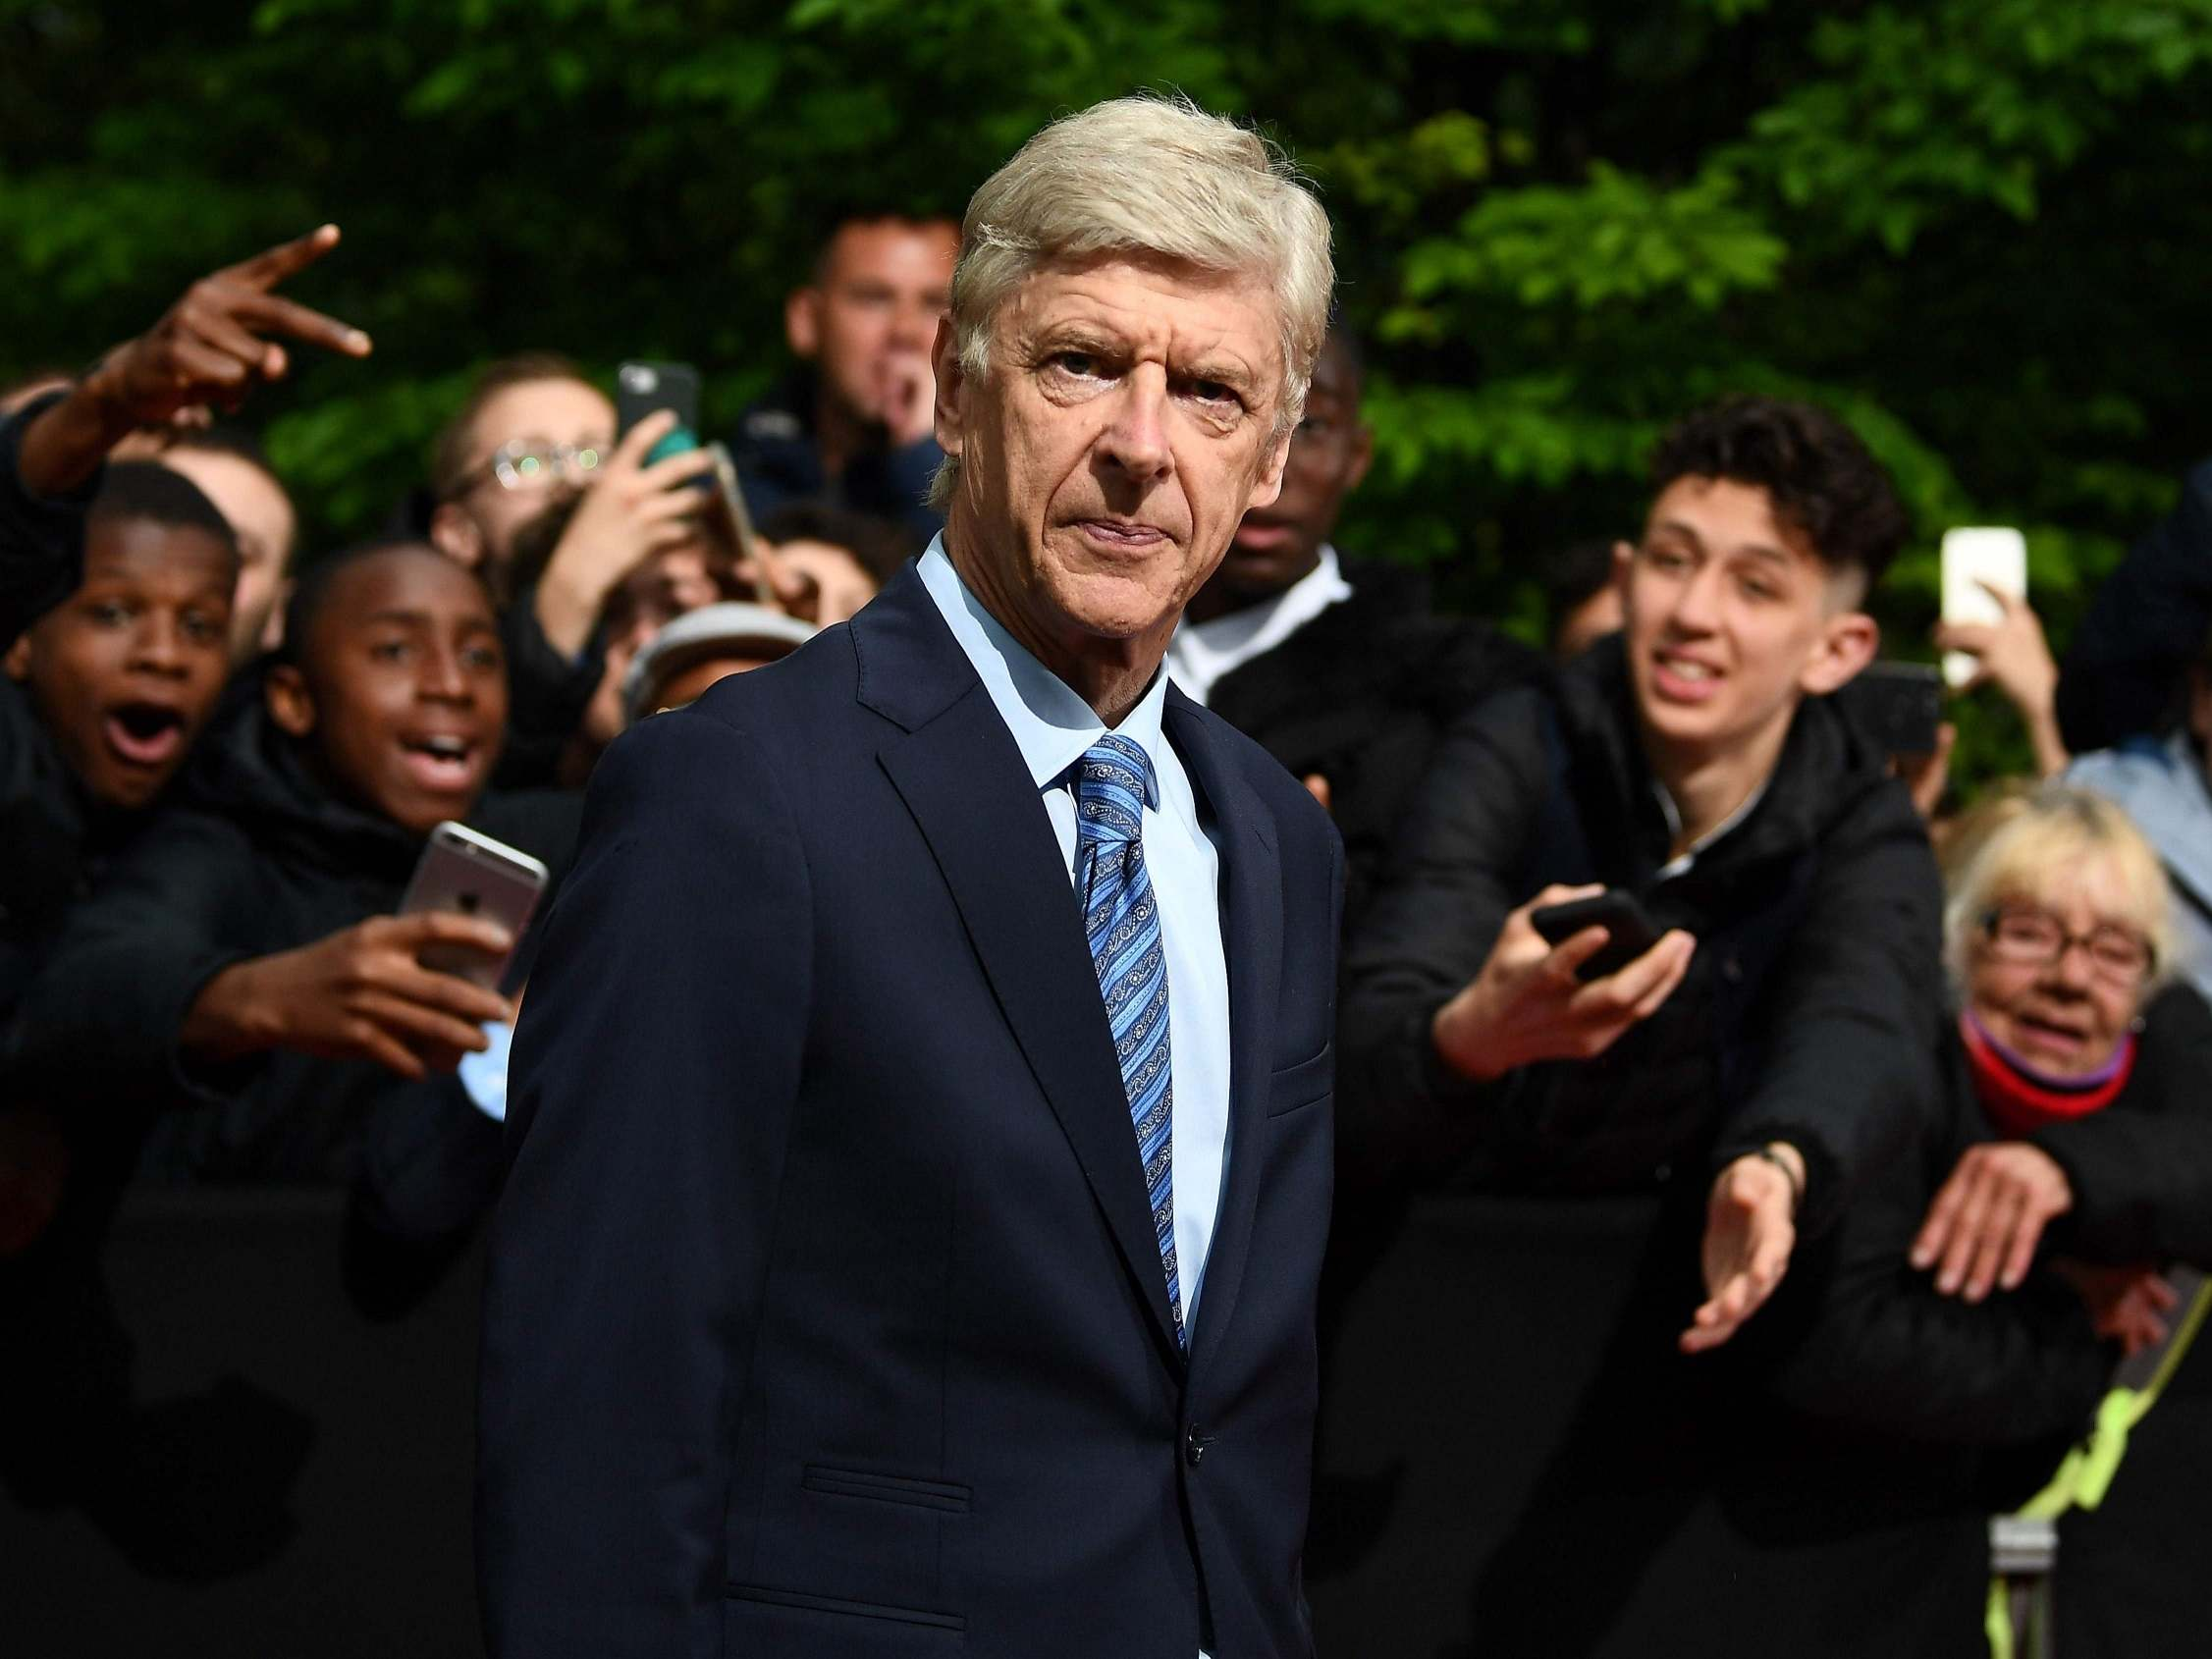 Next Newcastle manager: Arsene Wenger speaks out on future after links to Magpies job